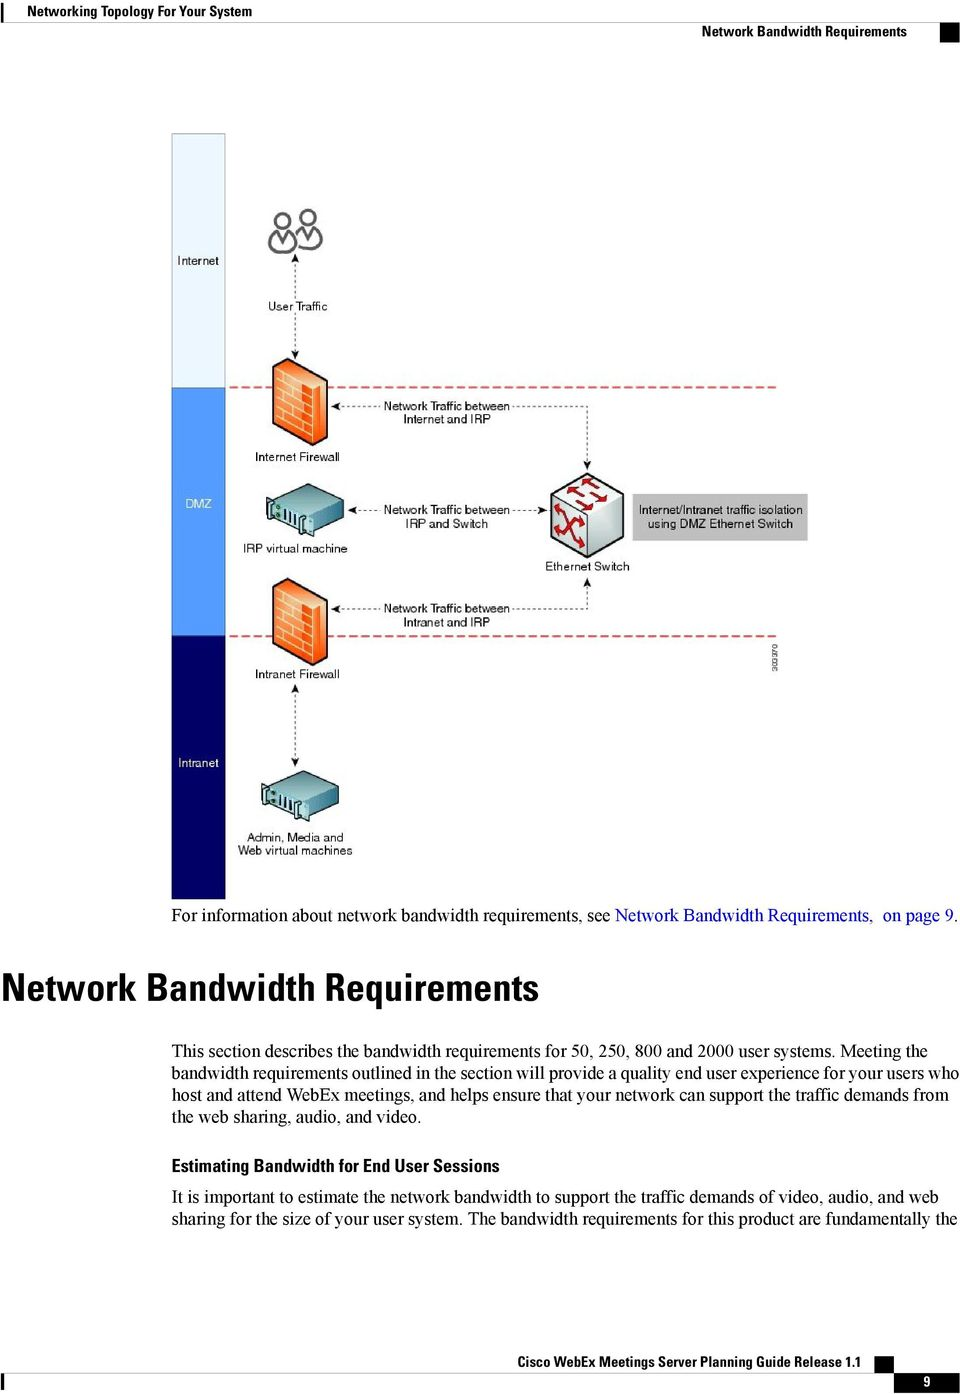 Meeting the bandwidth requirements outlined in the section will provide a quality end user experience for your users who host and attend WebEx meetings, and helps ensure that your network can